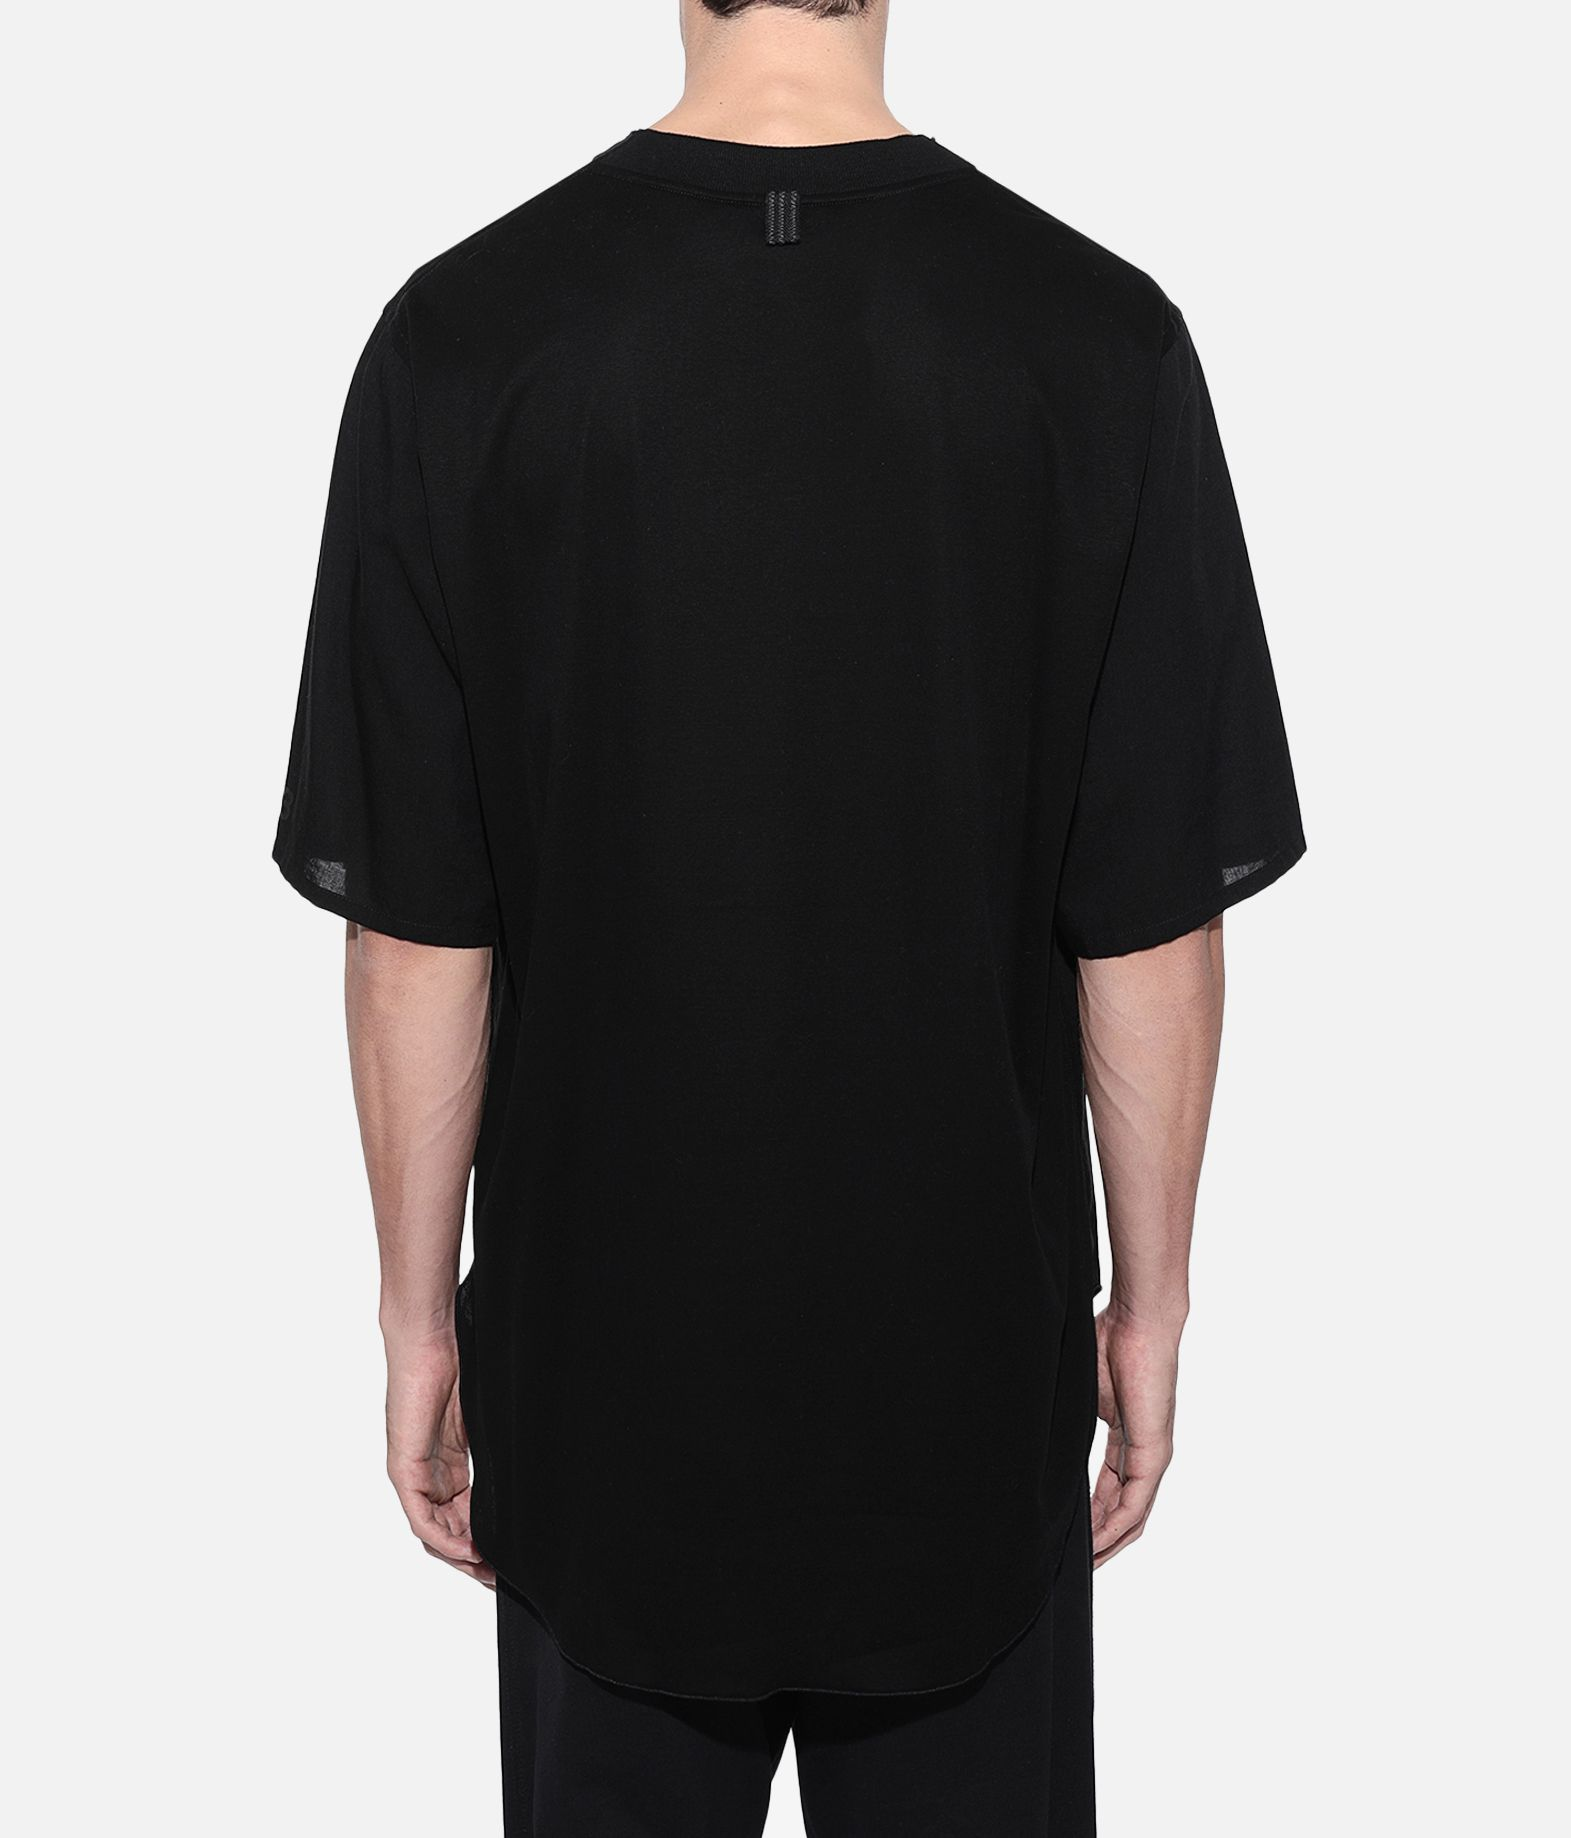 Y-3 Y-3 Long Tee  Short sleeve t-shirt Man e